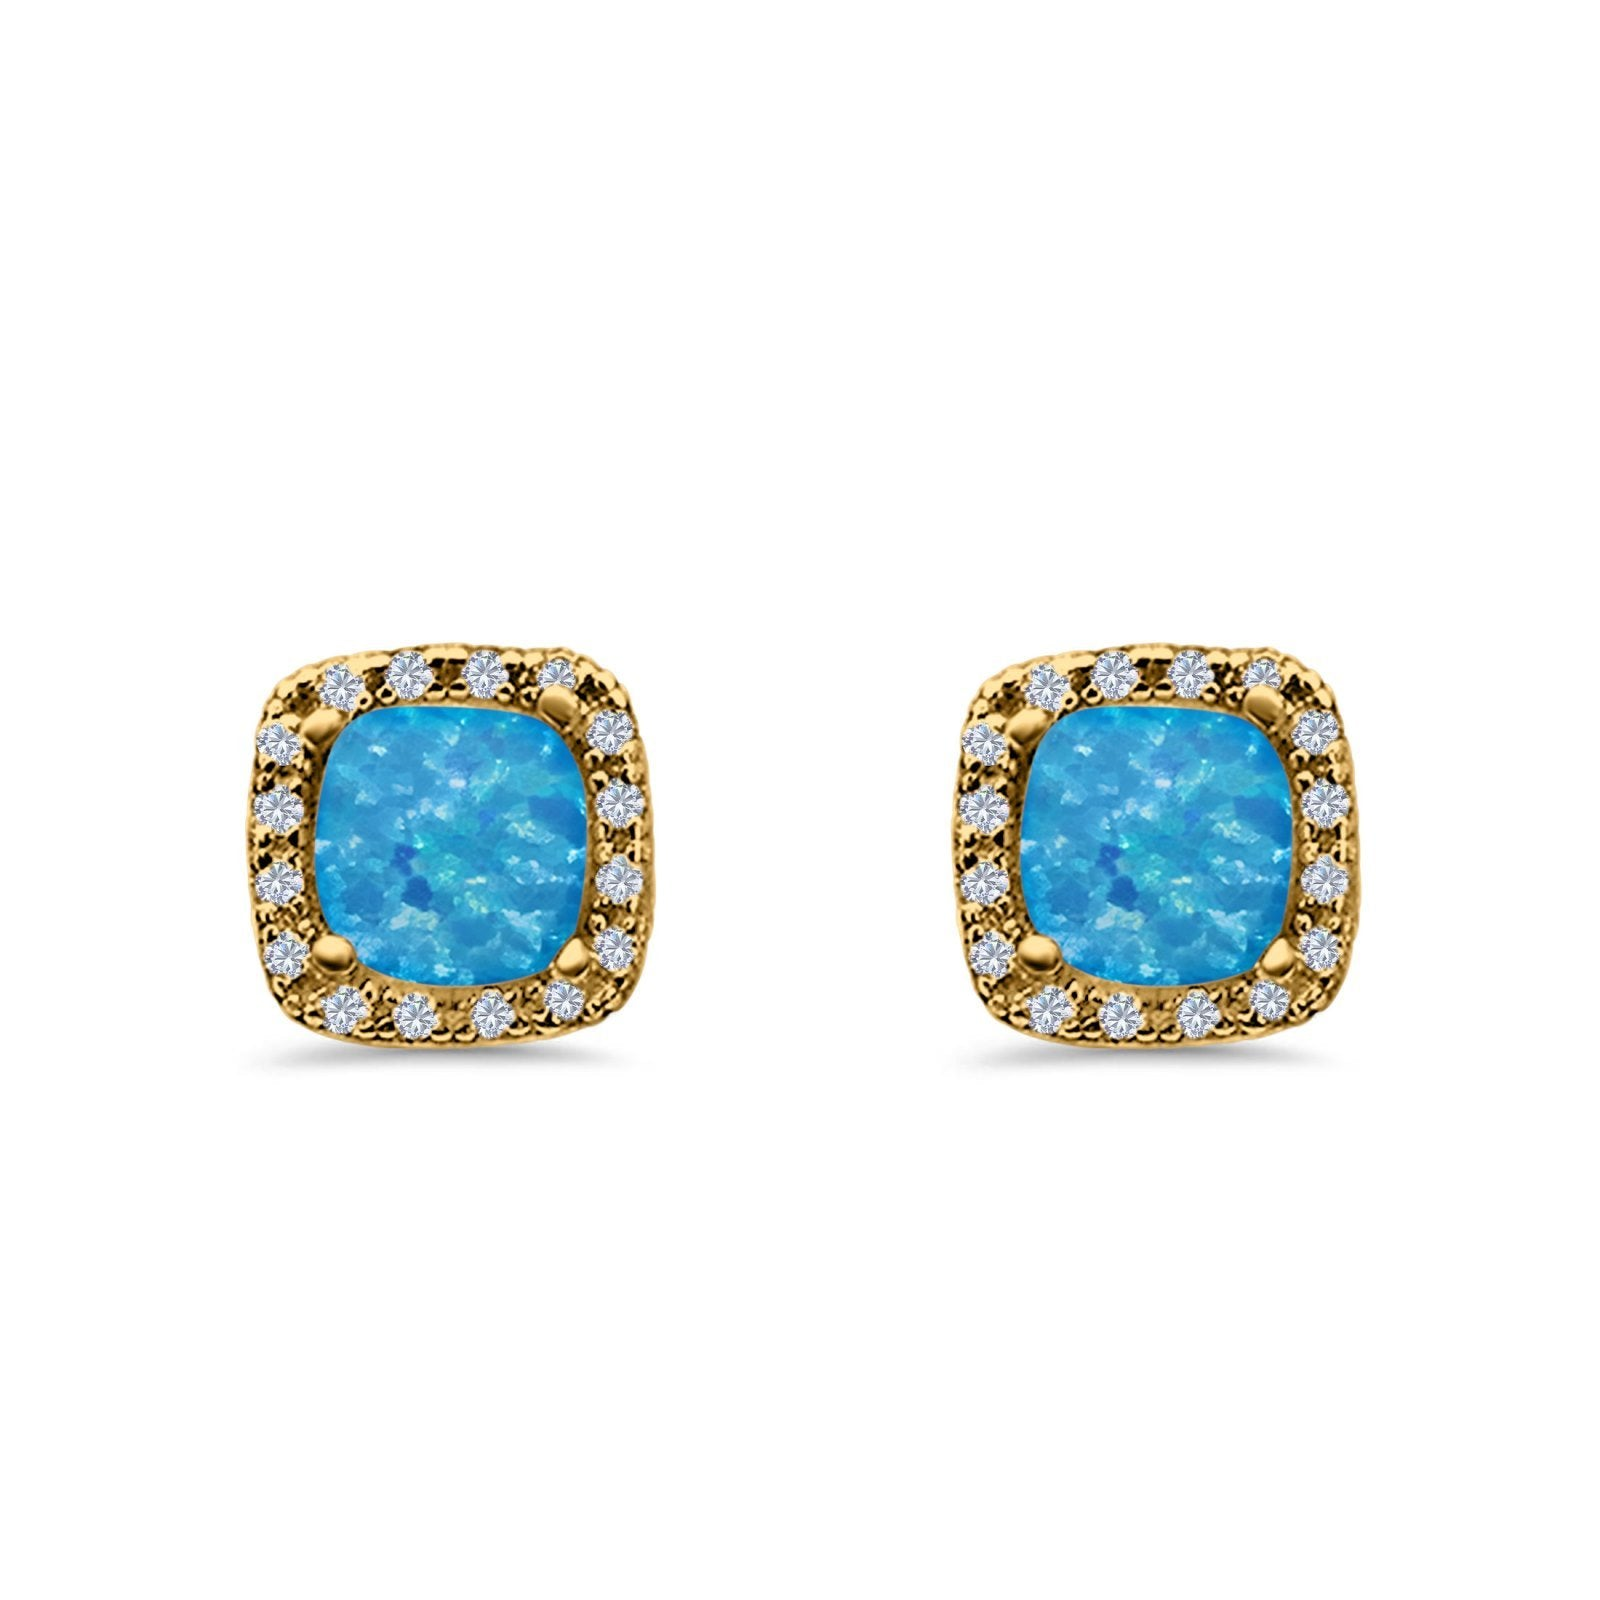 Halo Cushion Engagement Earrings Yellow Tone, Lab Created Blue Opal 925 Sterling Silver